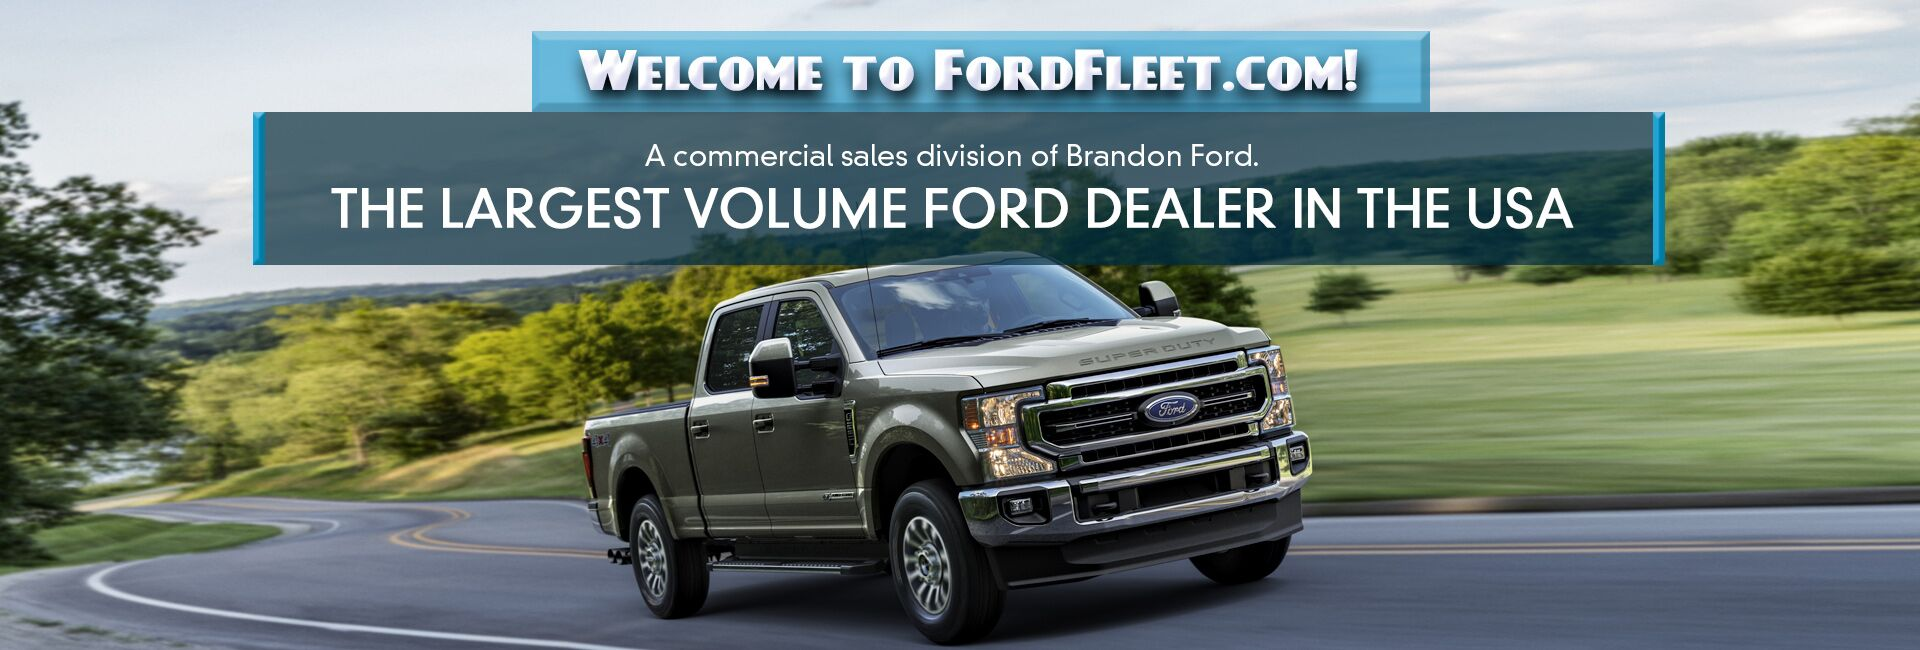 The Largest Volume Ford Dealer in the USA